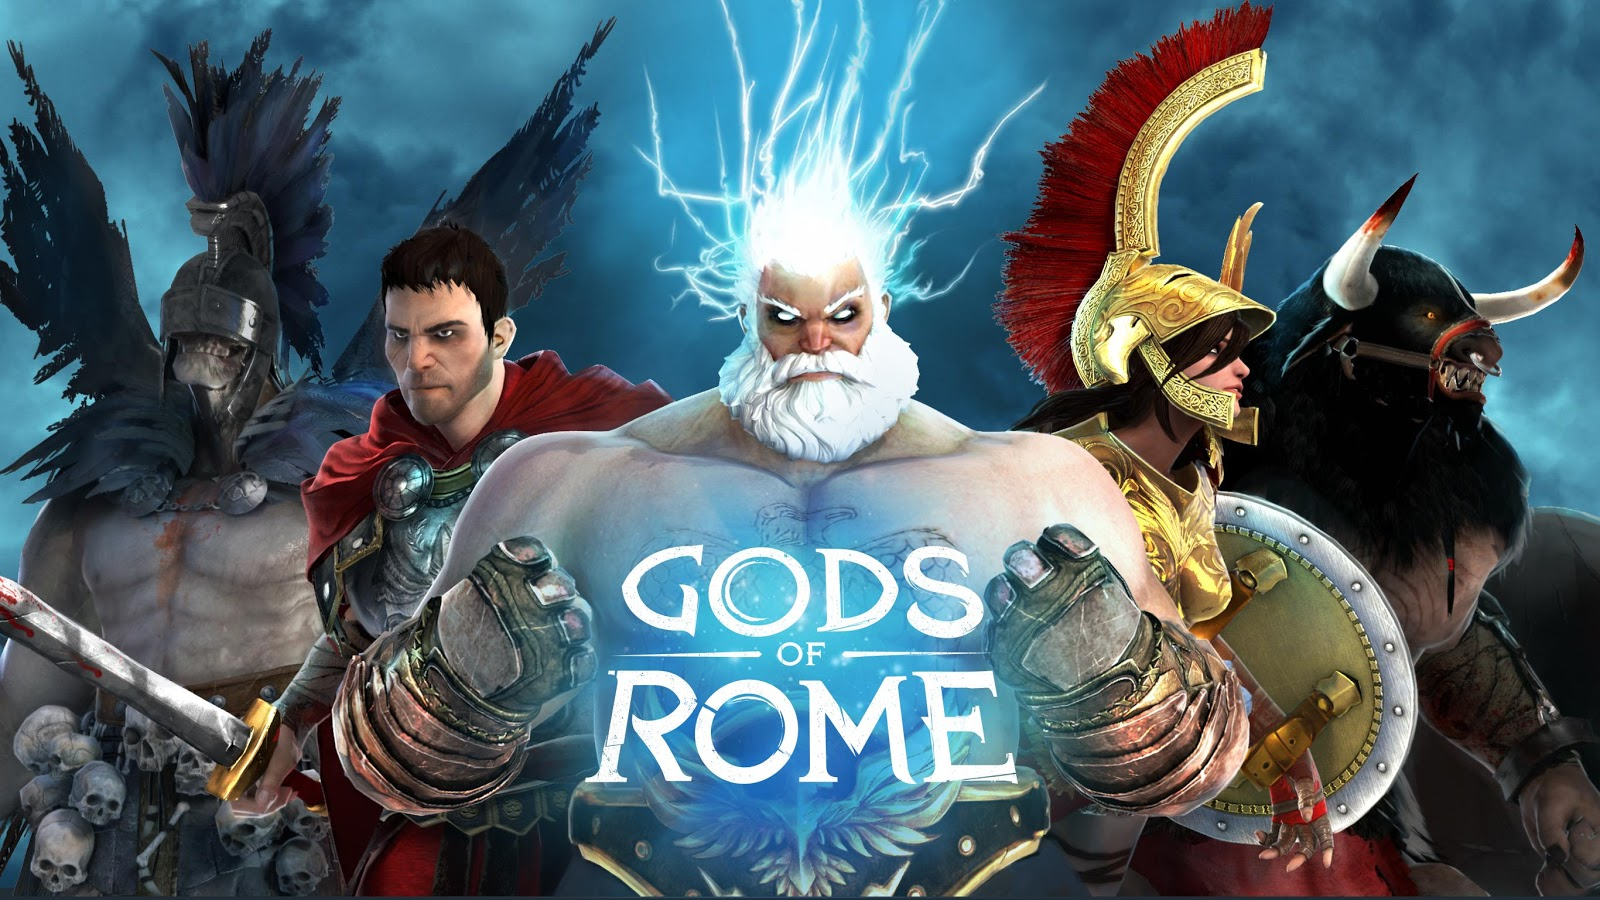 Gods of Rome images 1